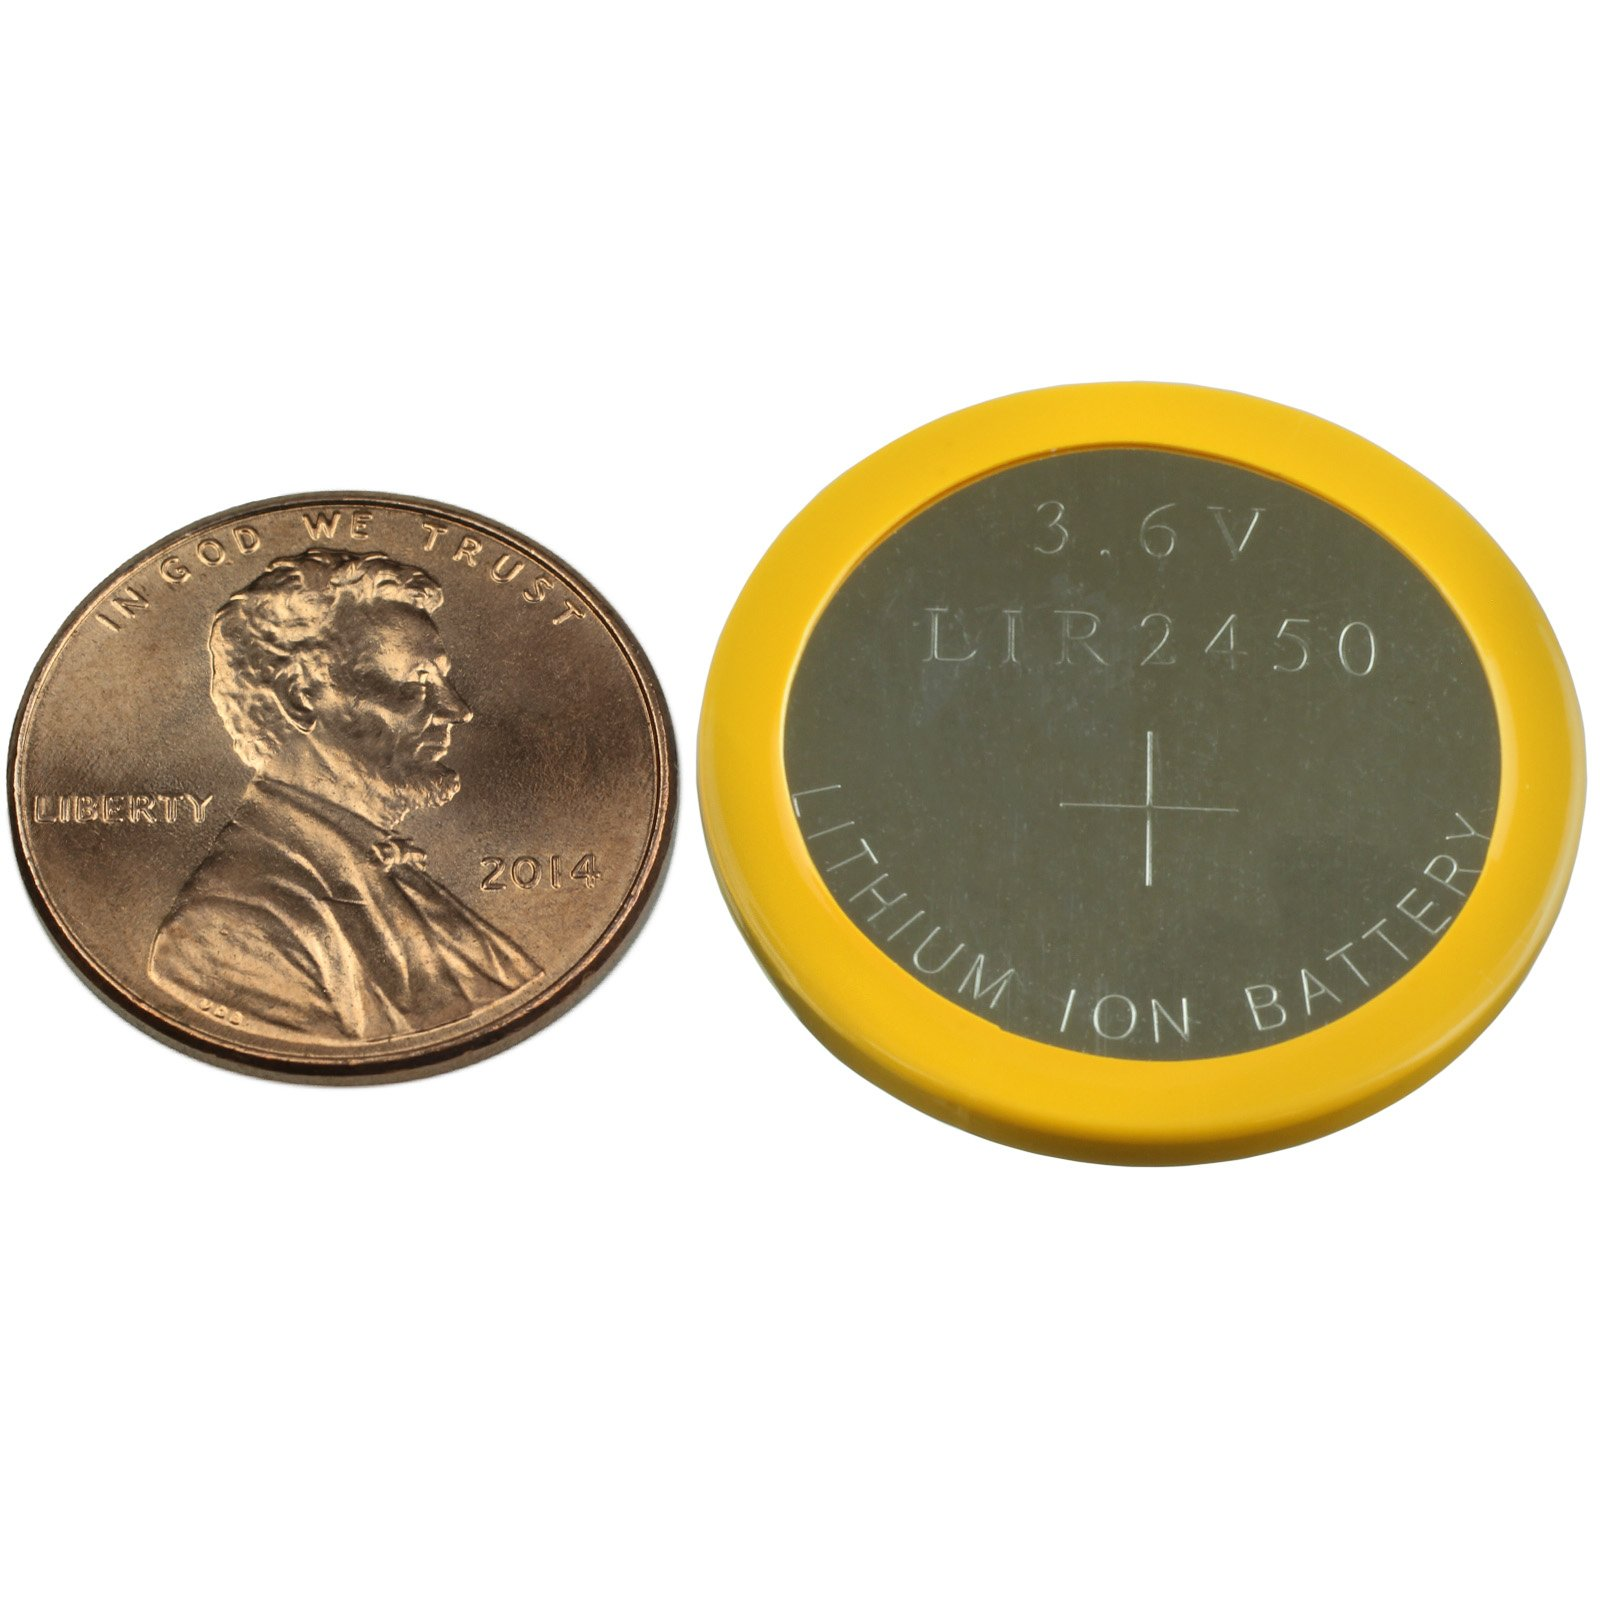 Rechargeable Lithium Cr2450 Coin Cell Battery